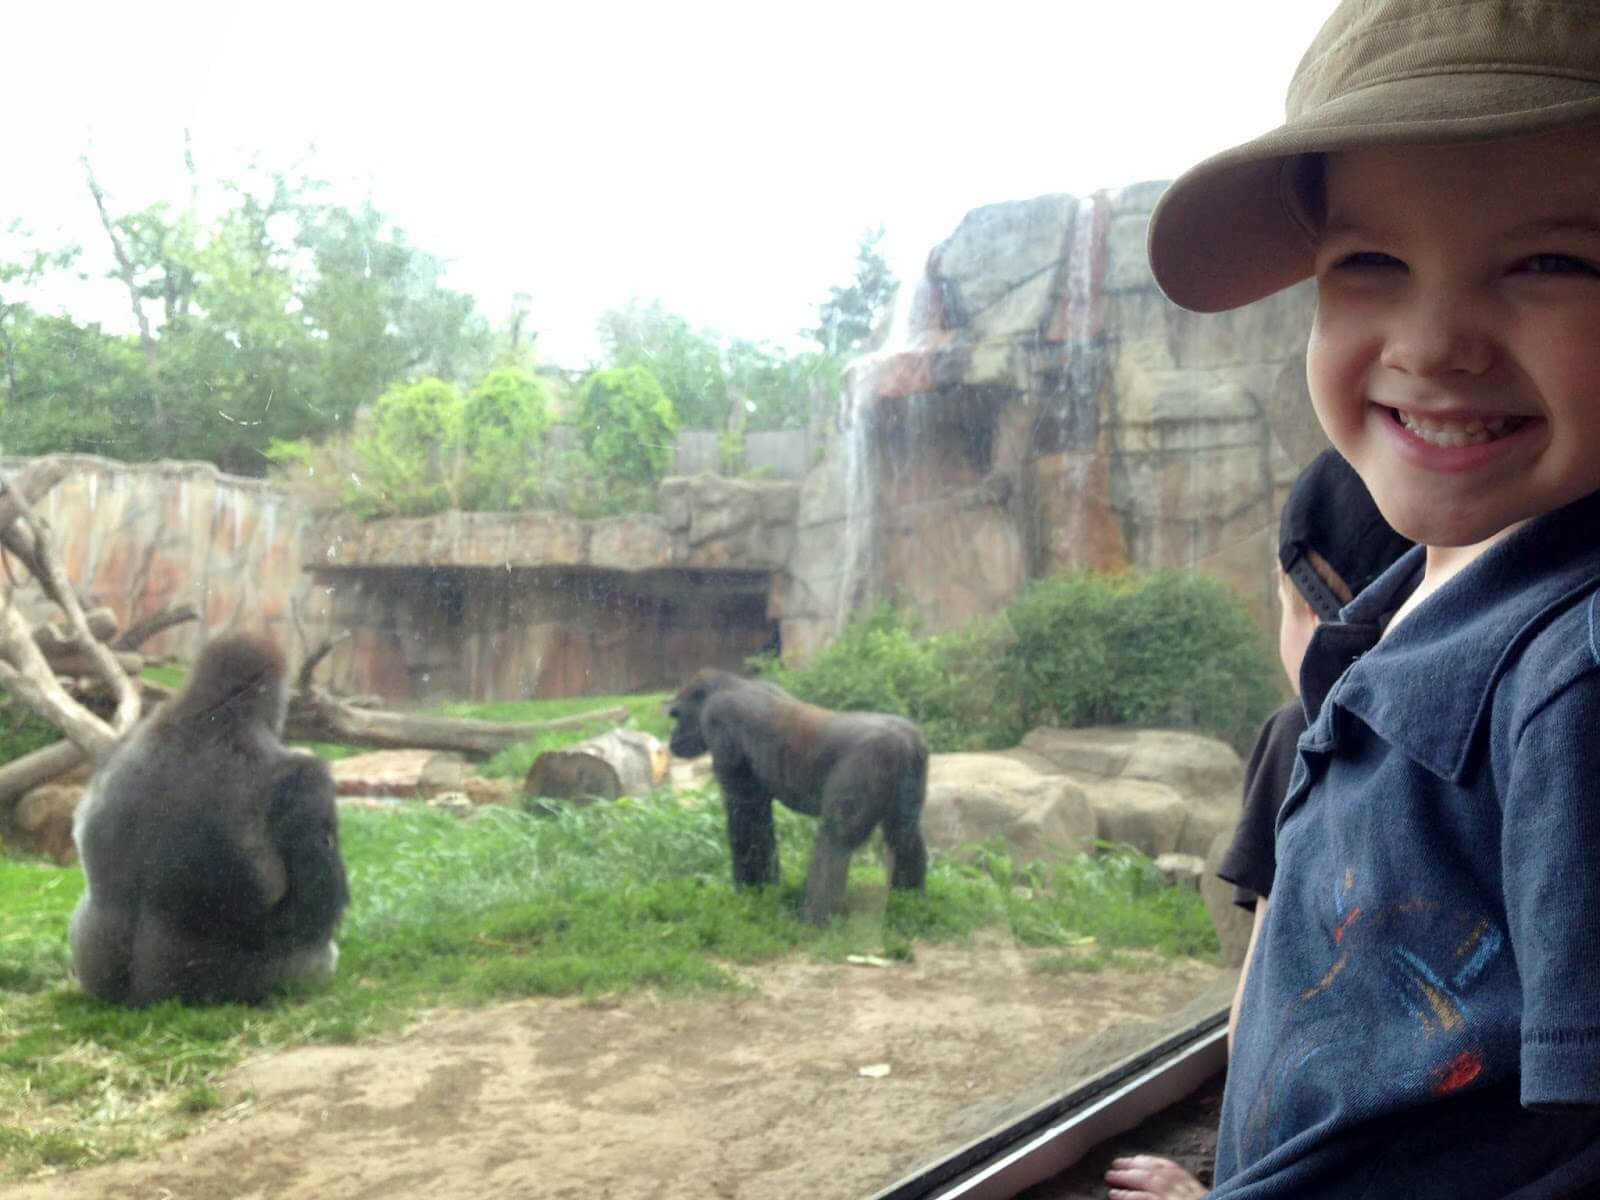 young boy and gorillas at zoo